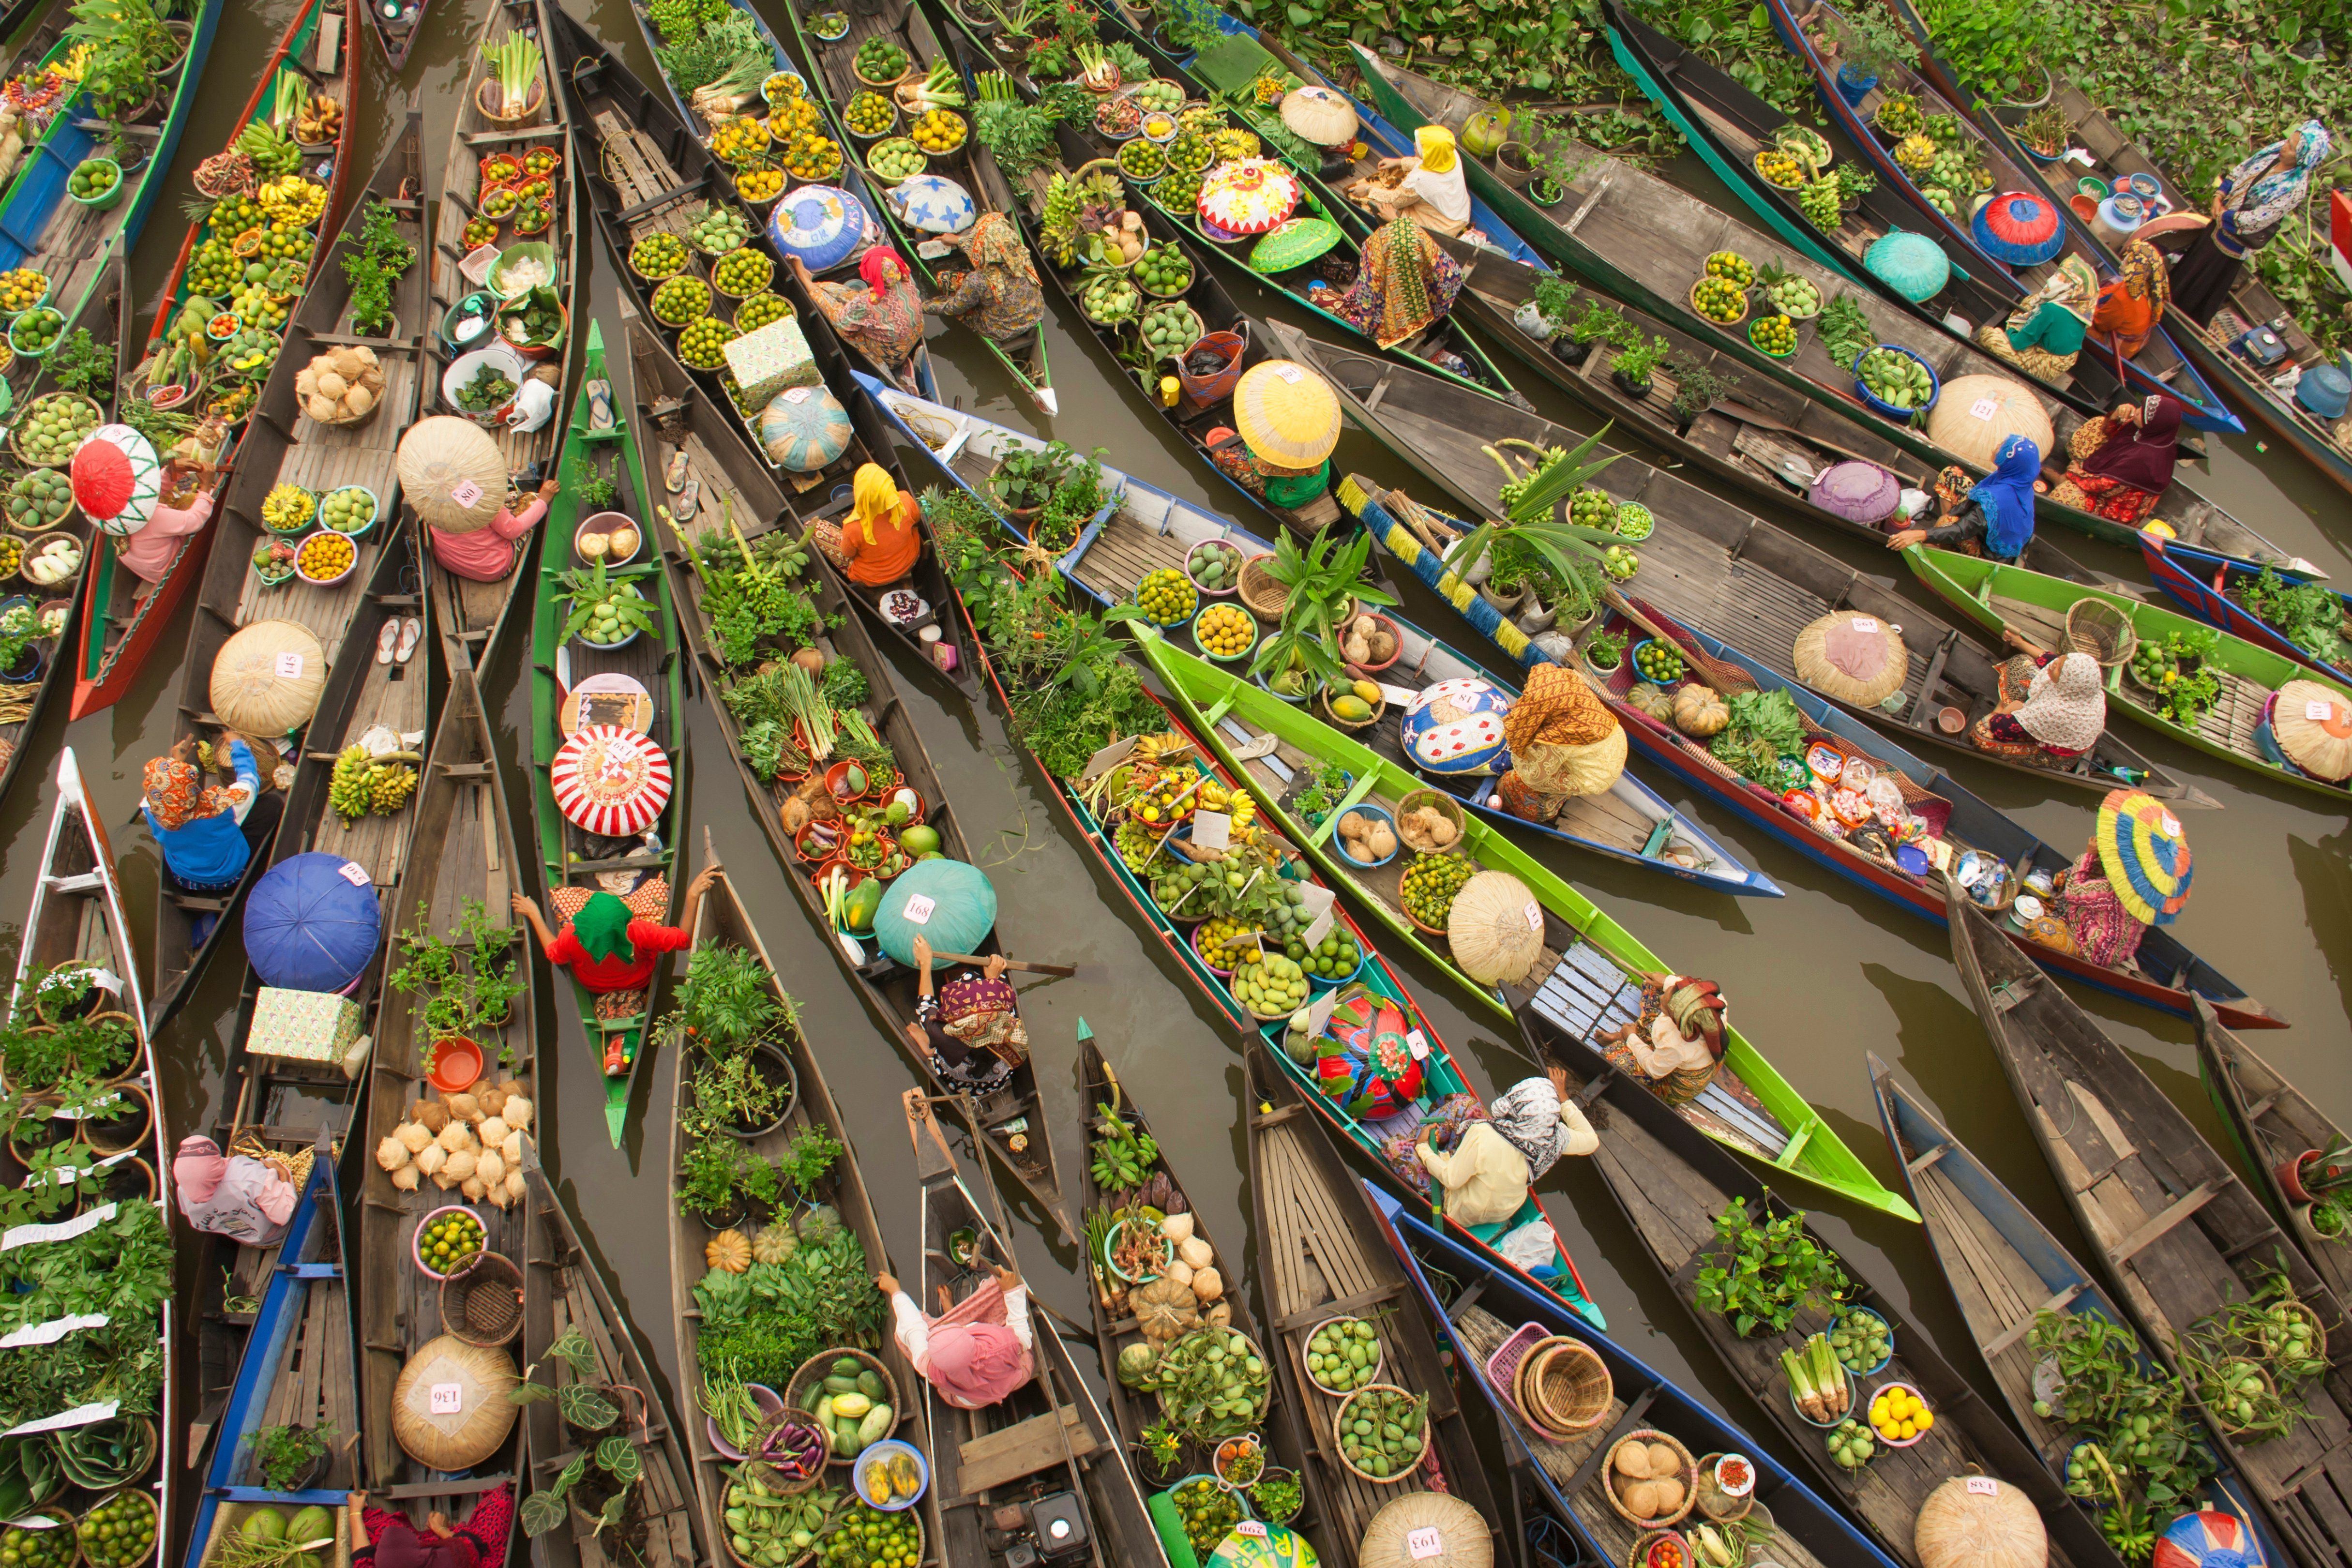 See The Winning Shots From The Siena International Photo Awards